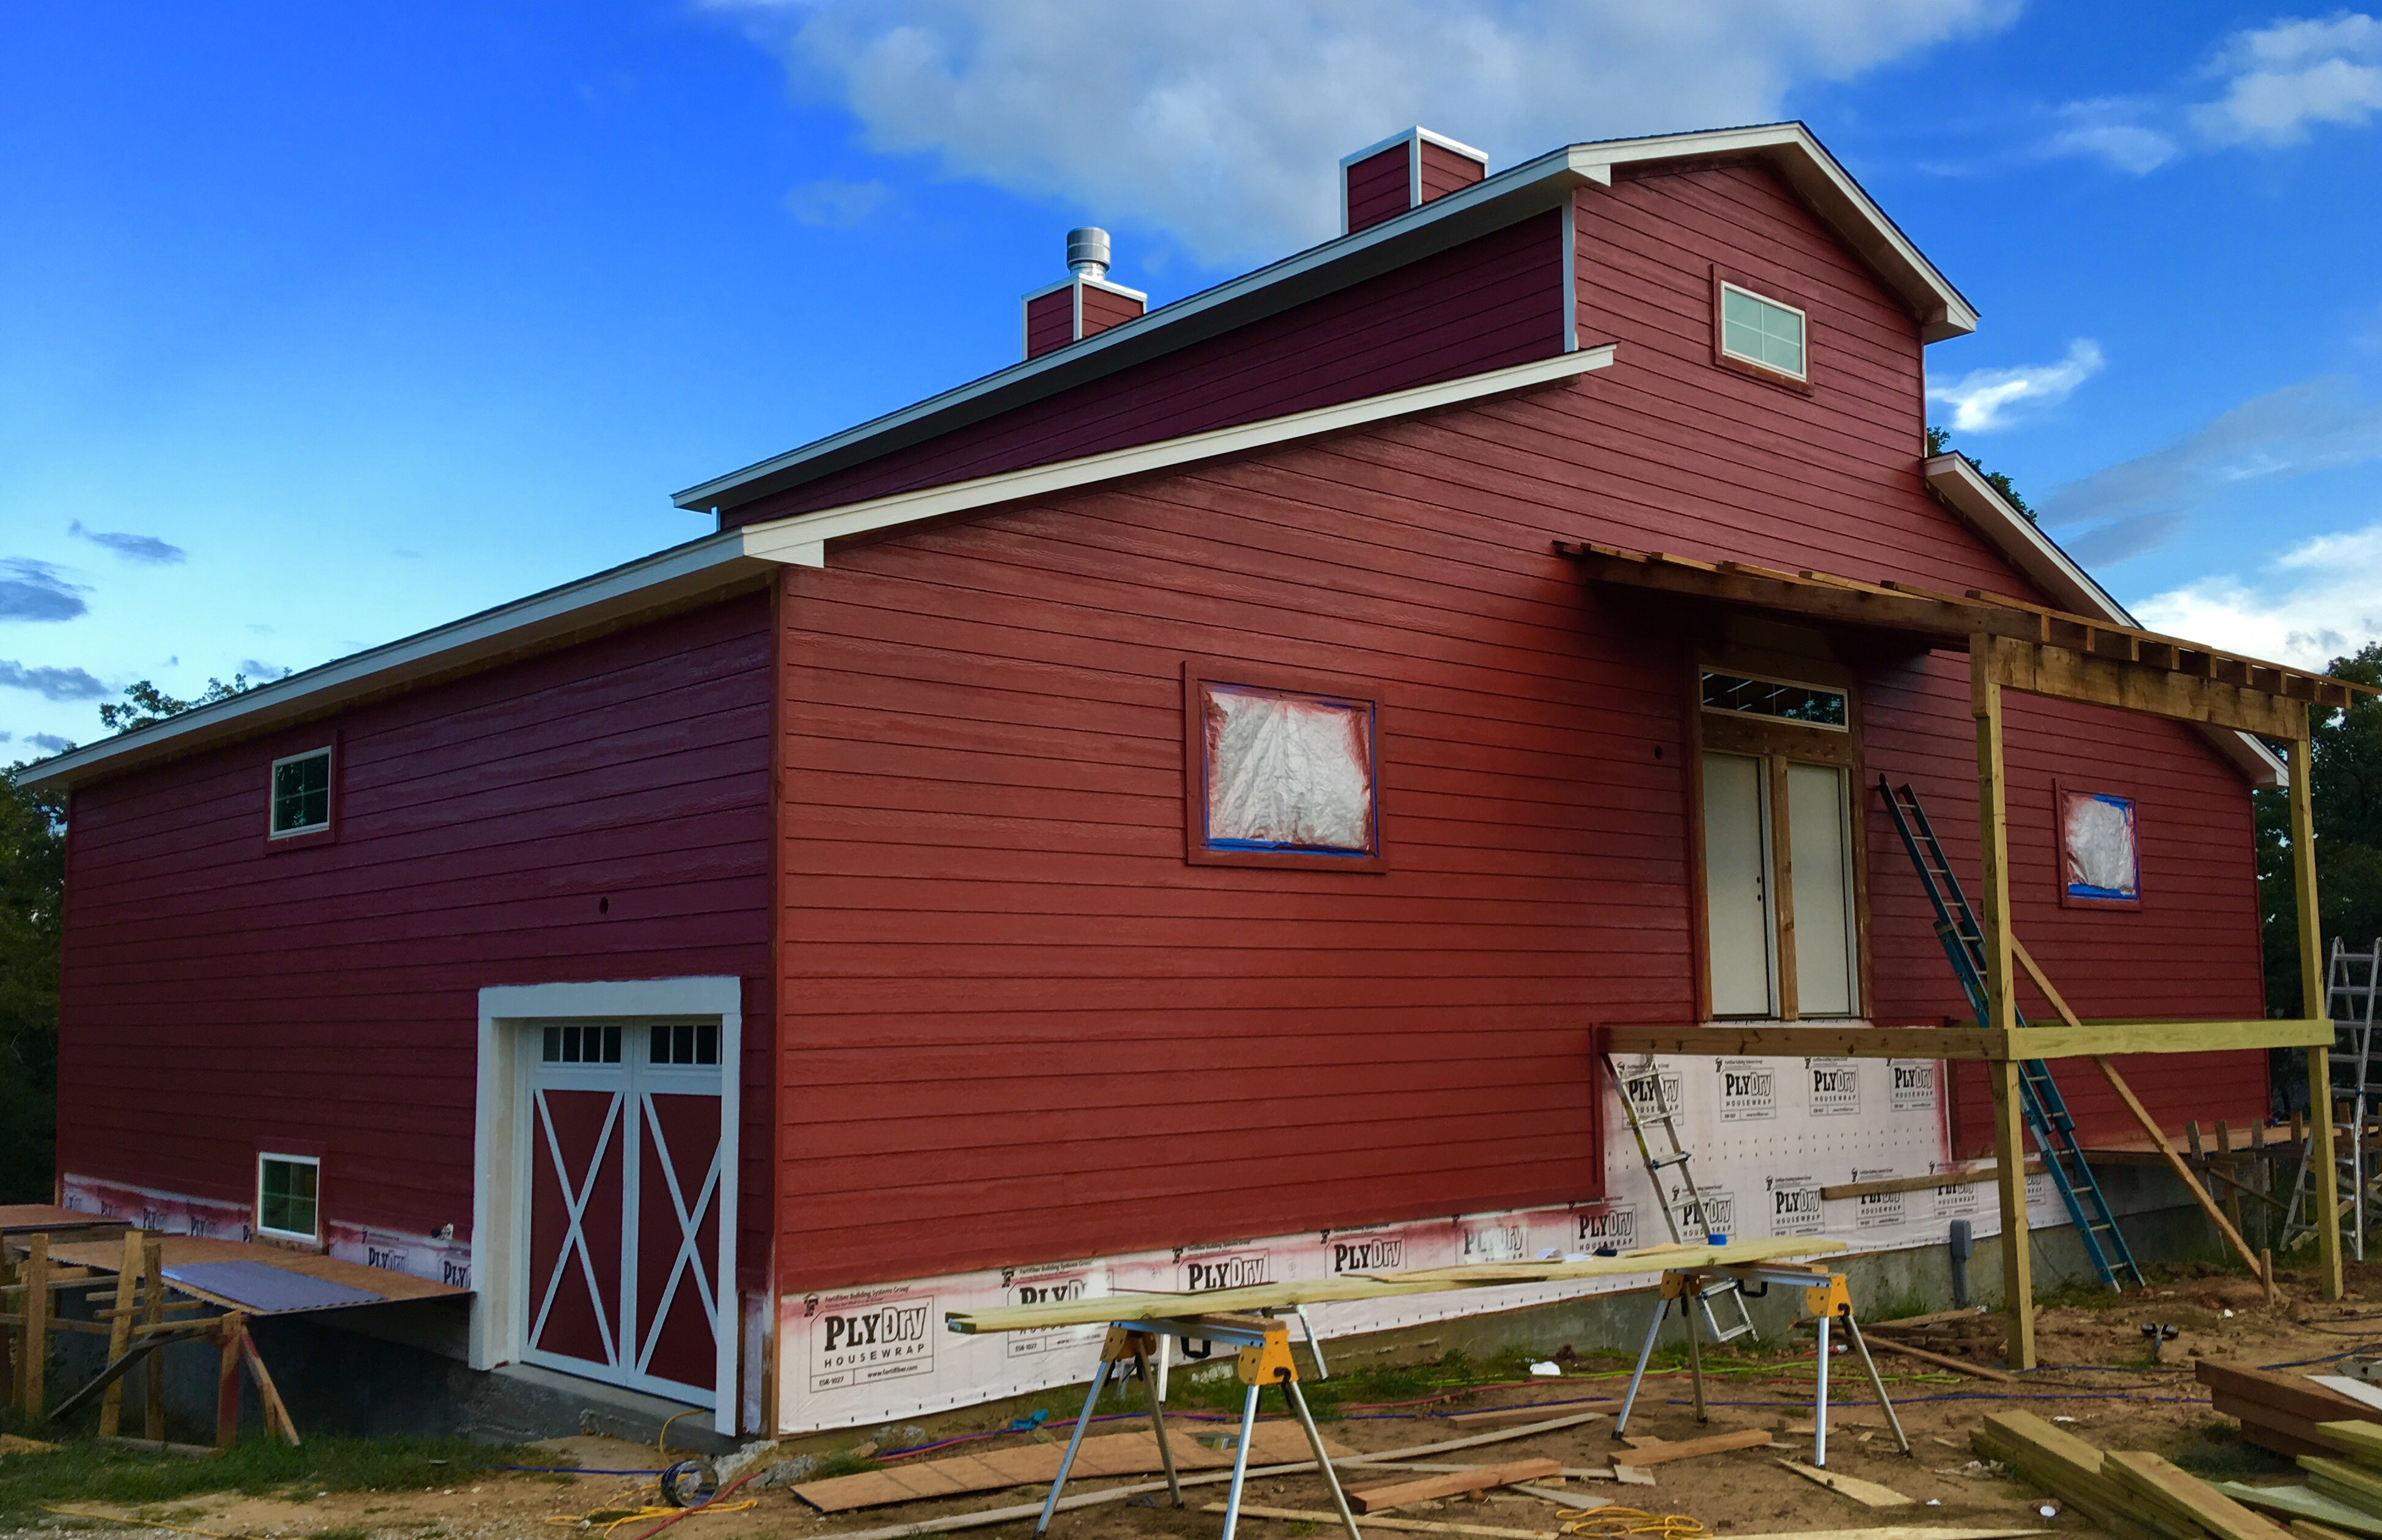 If Youre Curious About The Shade Of Red Its Sherwin Williams Fireweed And White Trim Is Extra I Saw A Barn Home With Perfect Colors